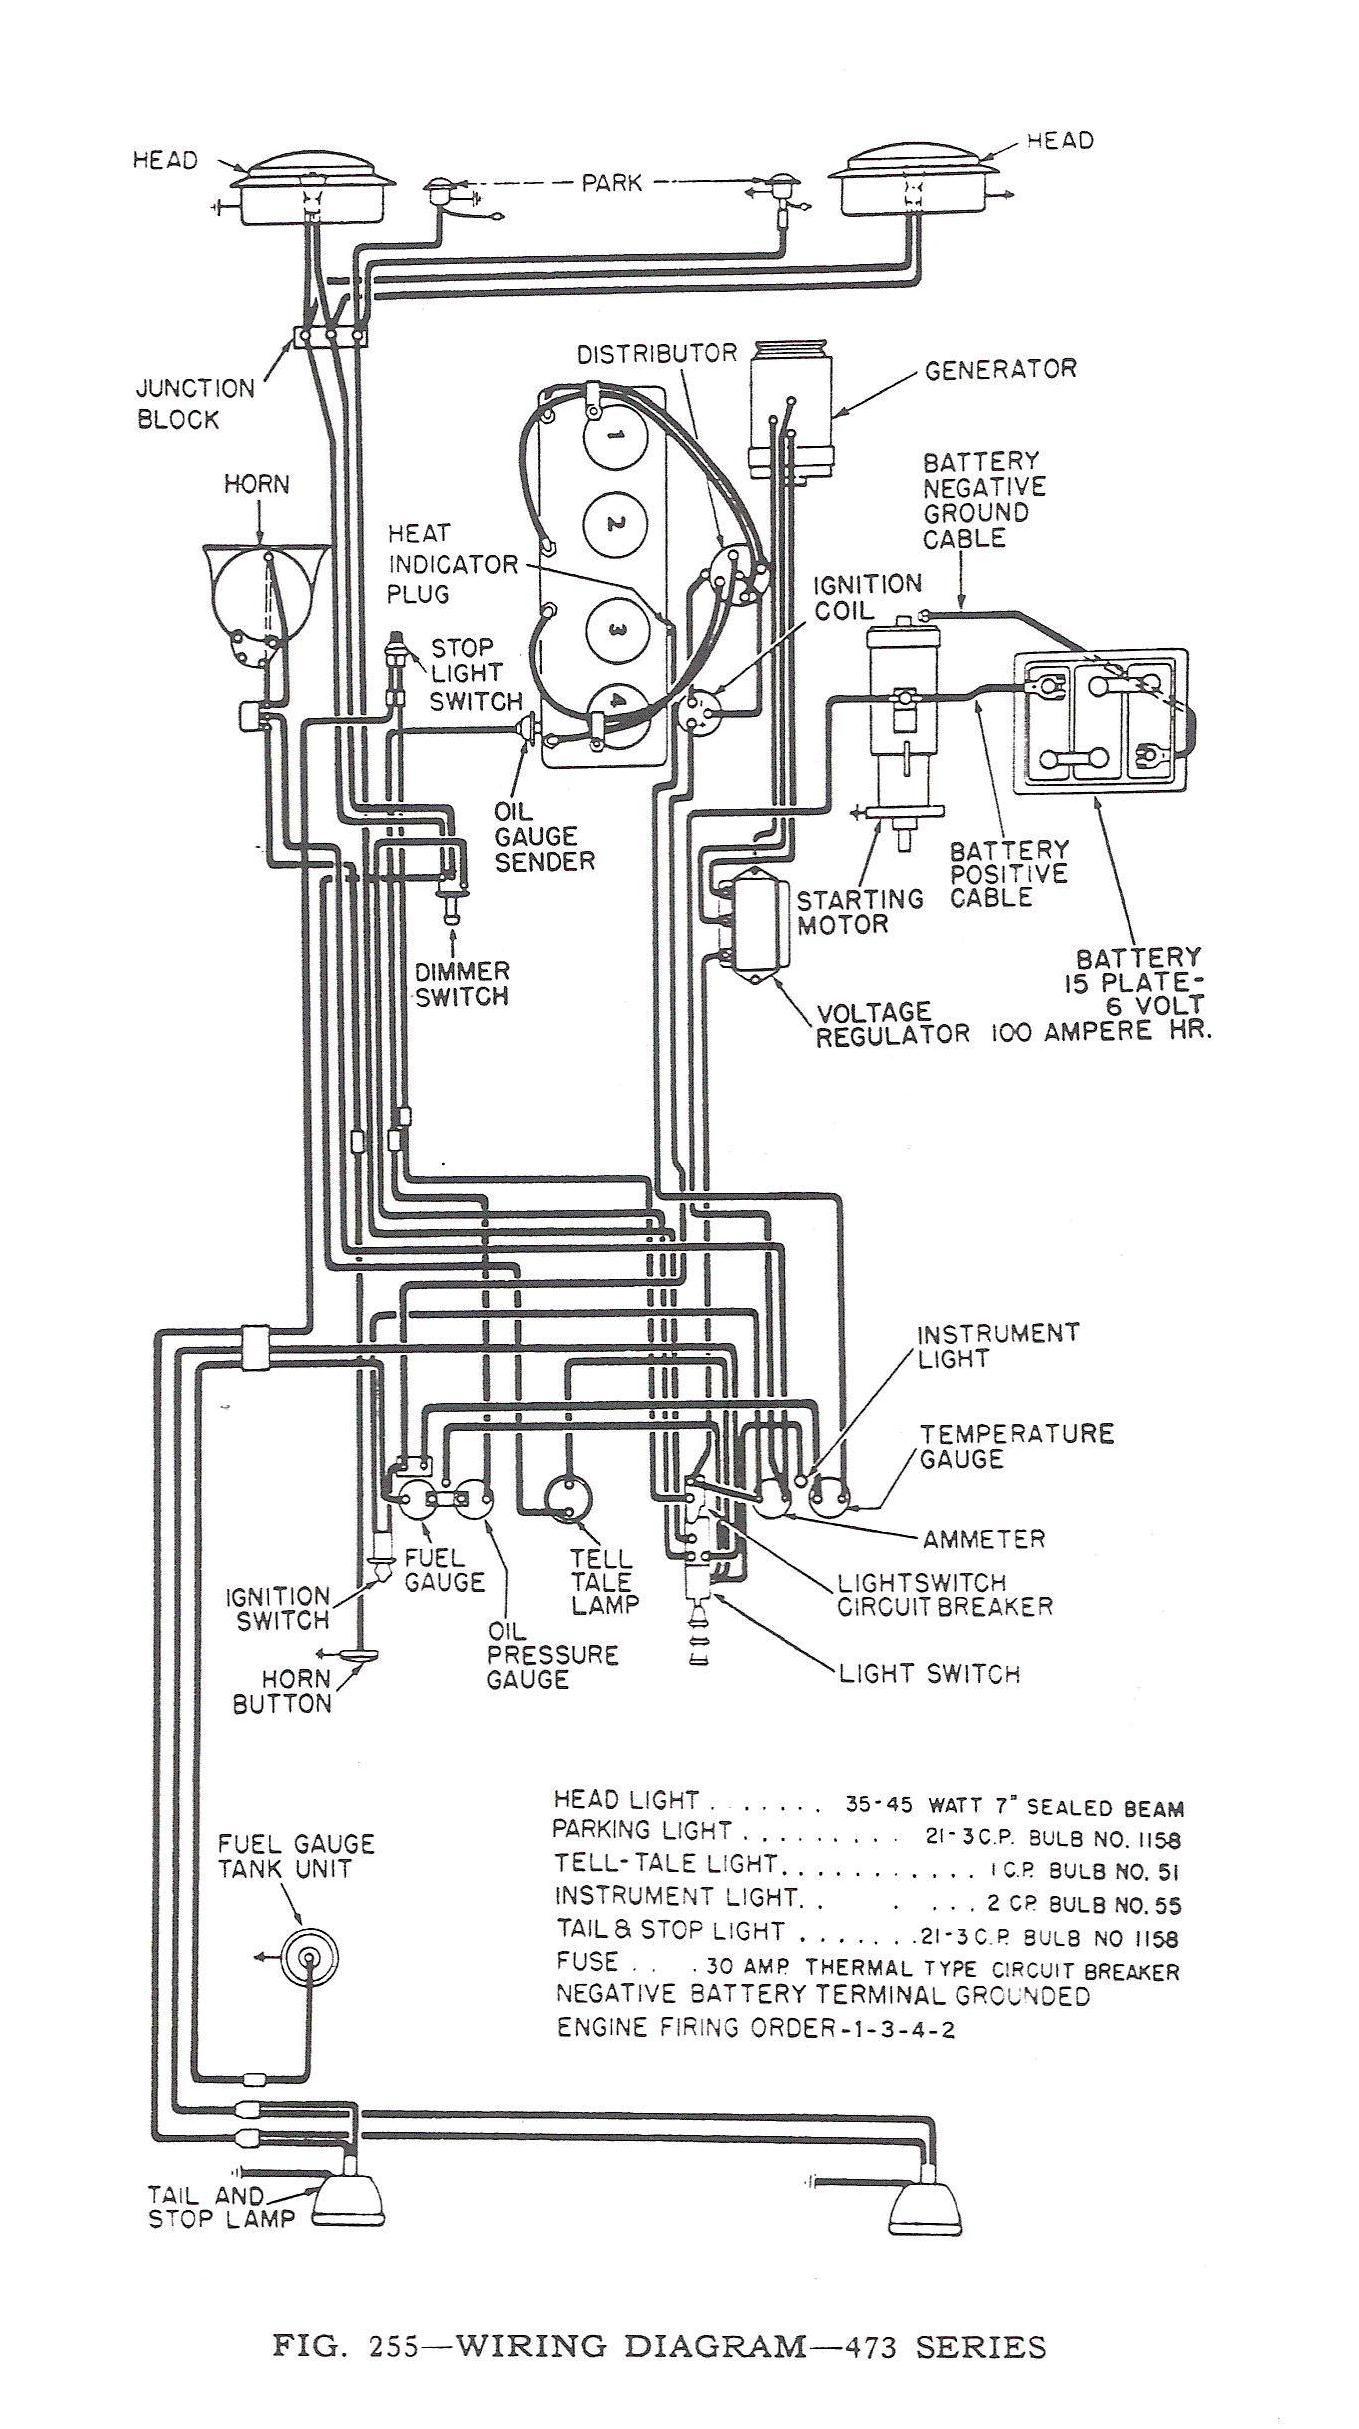 1952 jeep series 473 wiring diagrams google search willis overland jeep willys jeep [ 1359 x 2429 Pixel ]